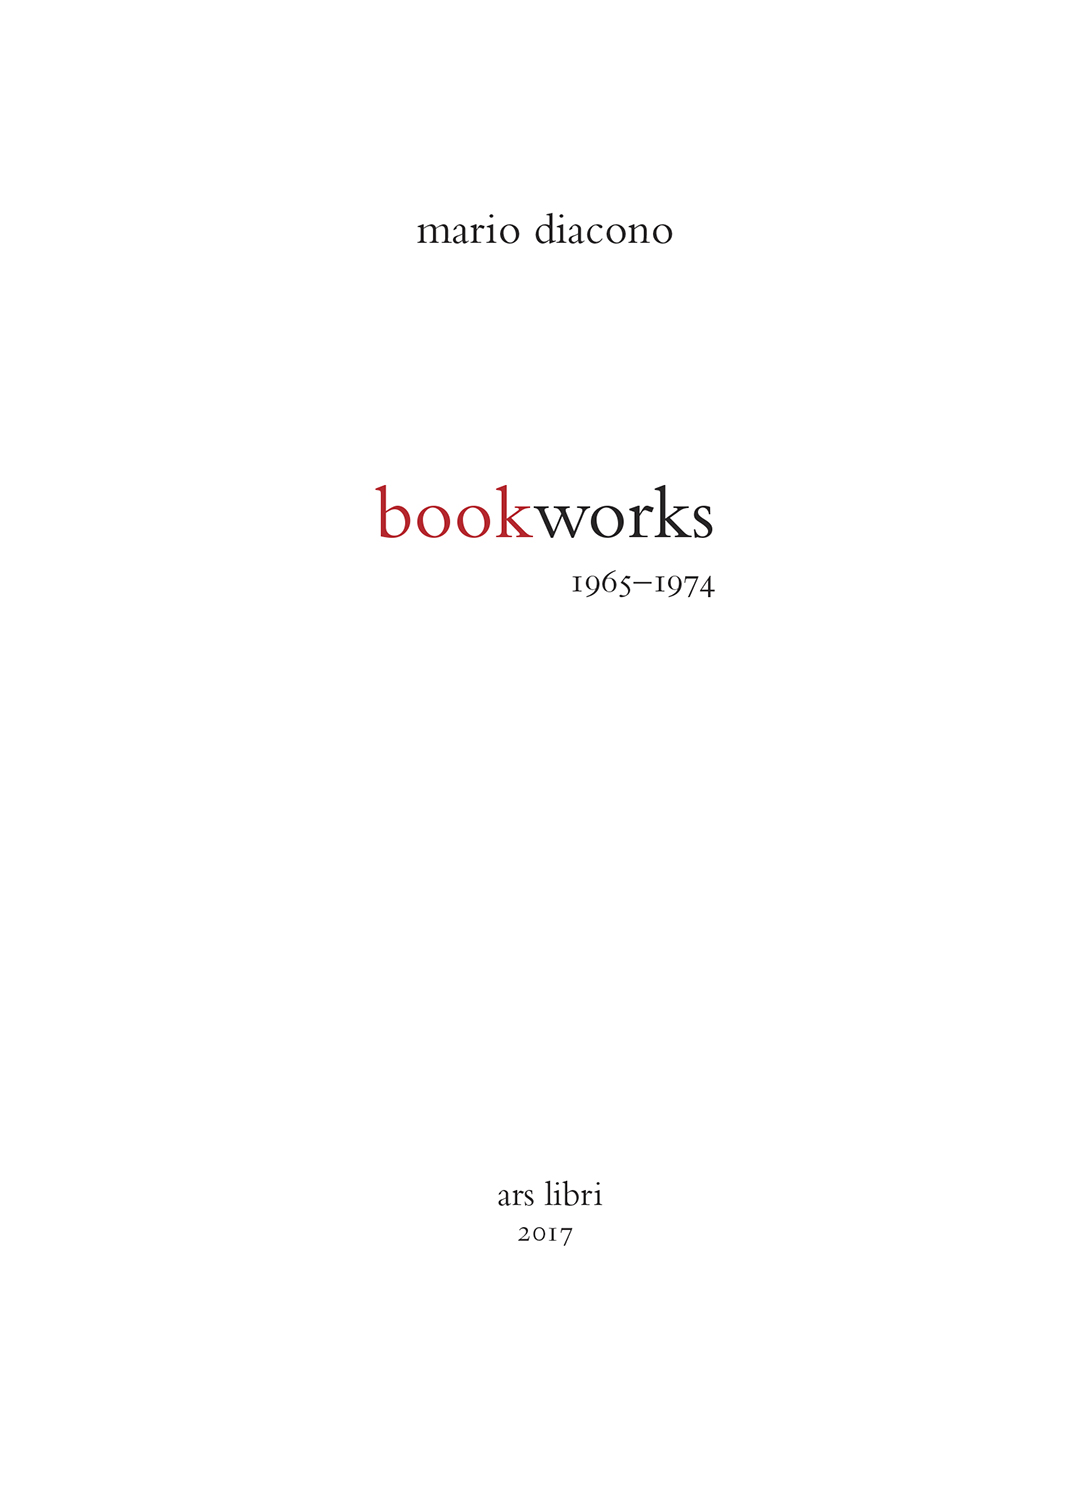 Mario Diacomo Bookworks  5 x 7 inches, 28 pages, printed on Mohawk Superfine Published by Ars Libri, 2017 Designed by Stephen Stinehour Printed by Puritan Capital on an HP Indigo Digital Press